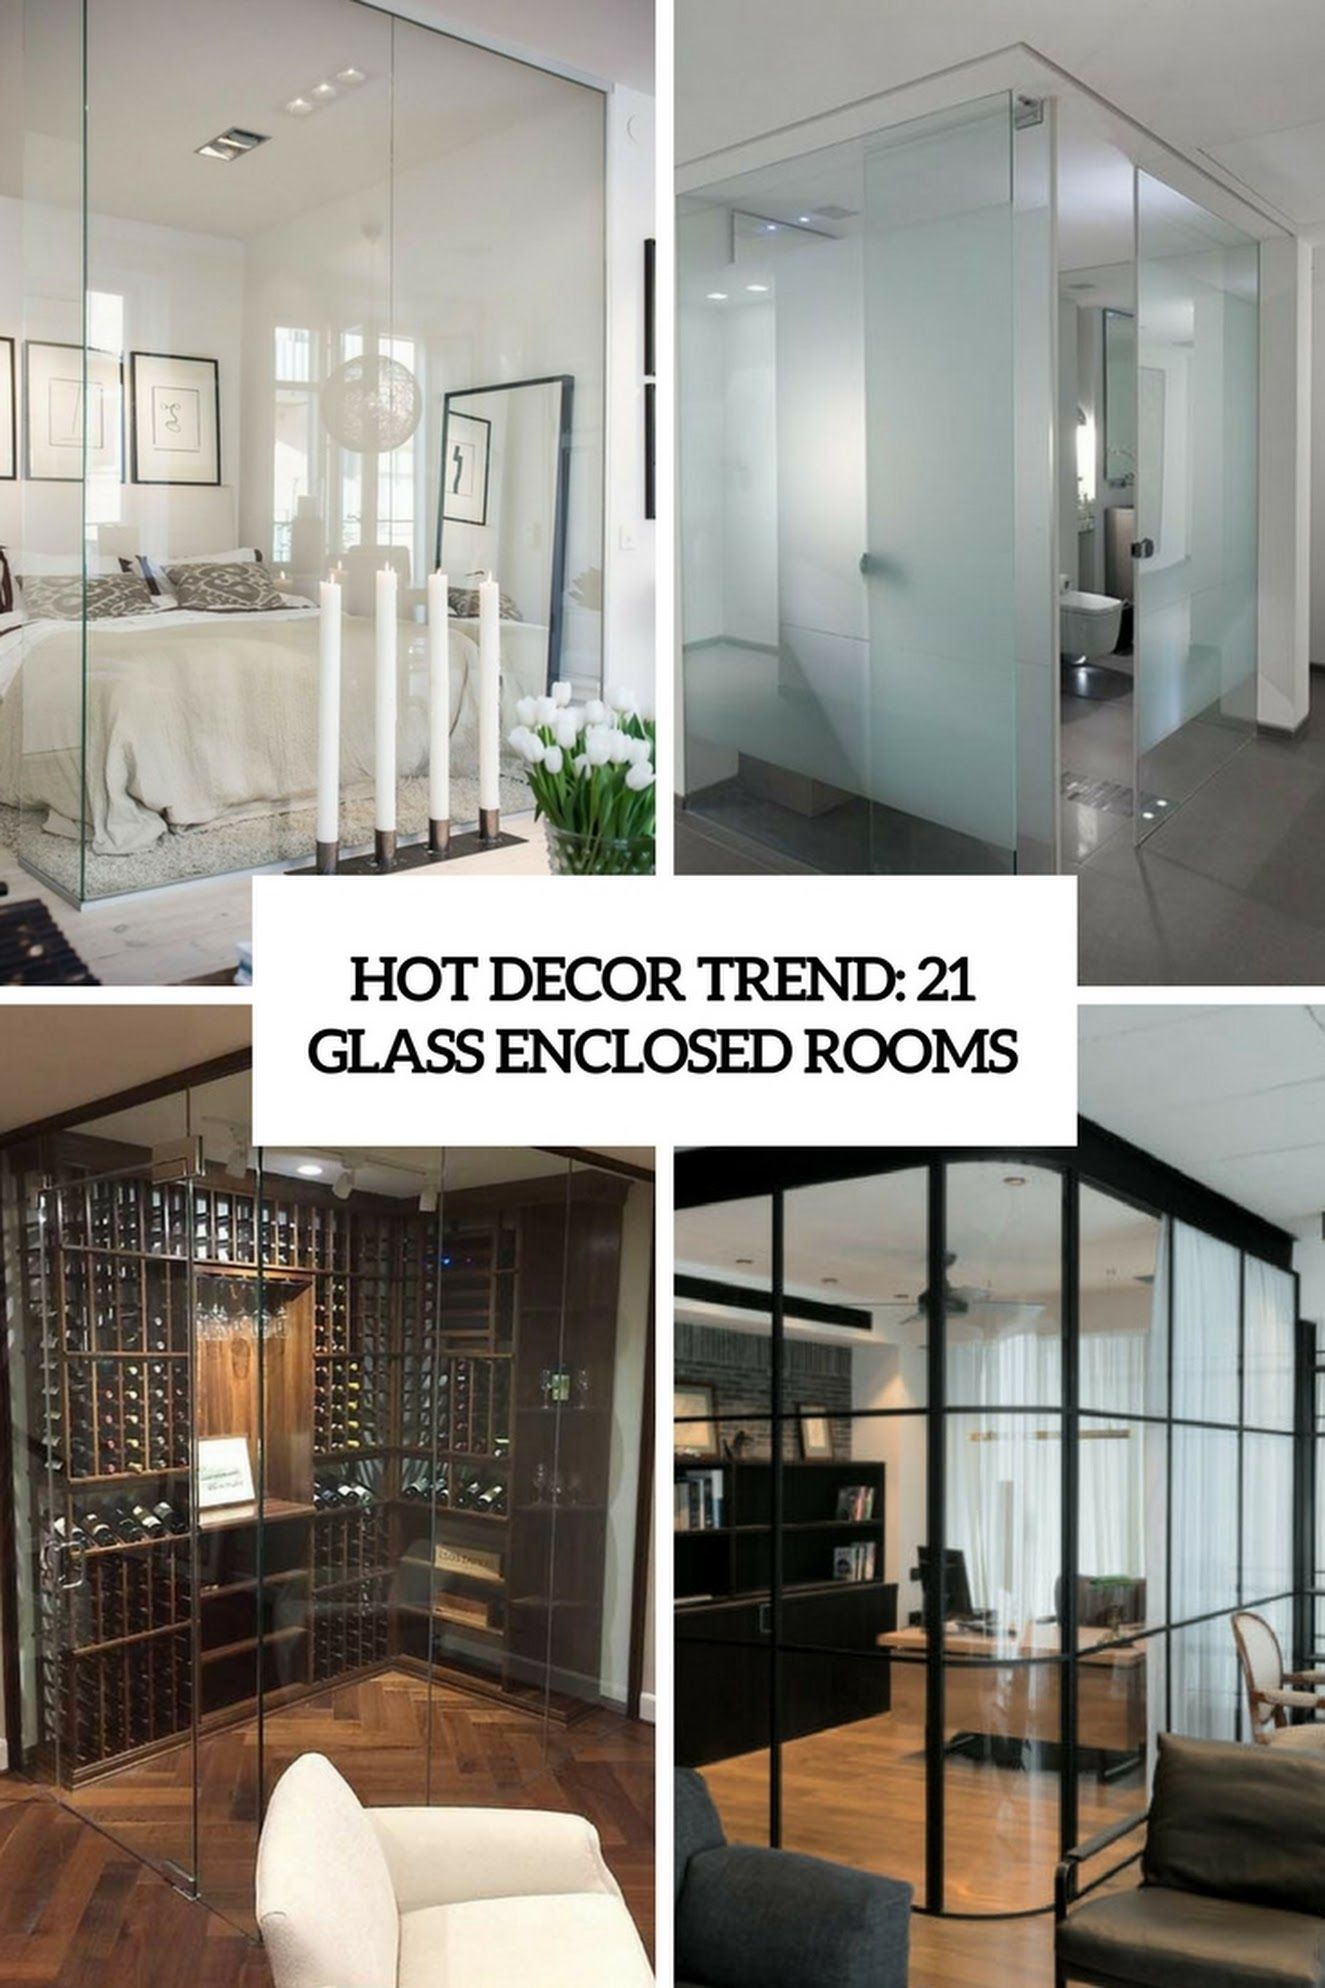 21 Glass Enclosed Rooms Trending Decor Room 21st Glass